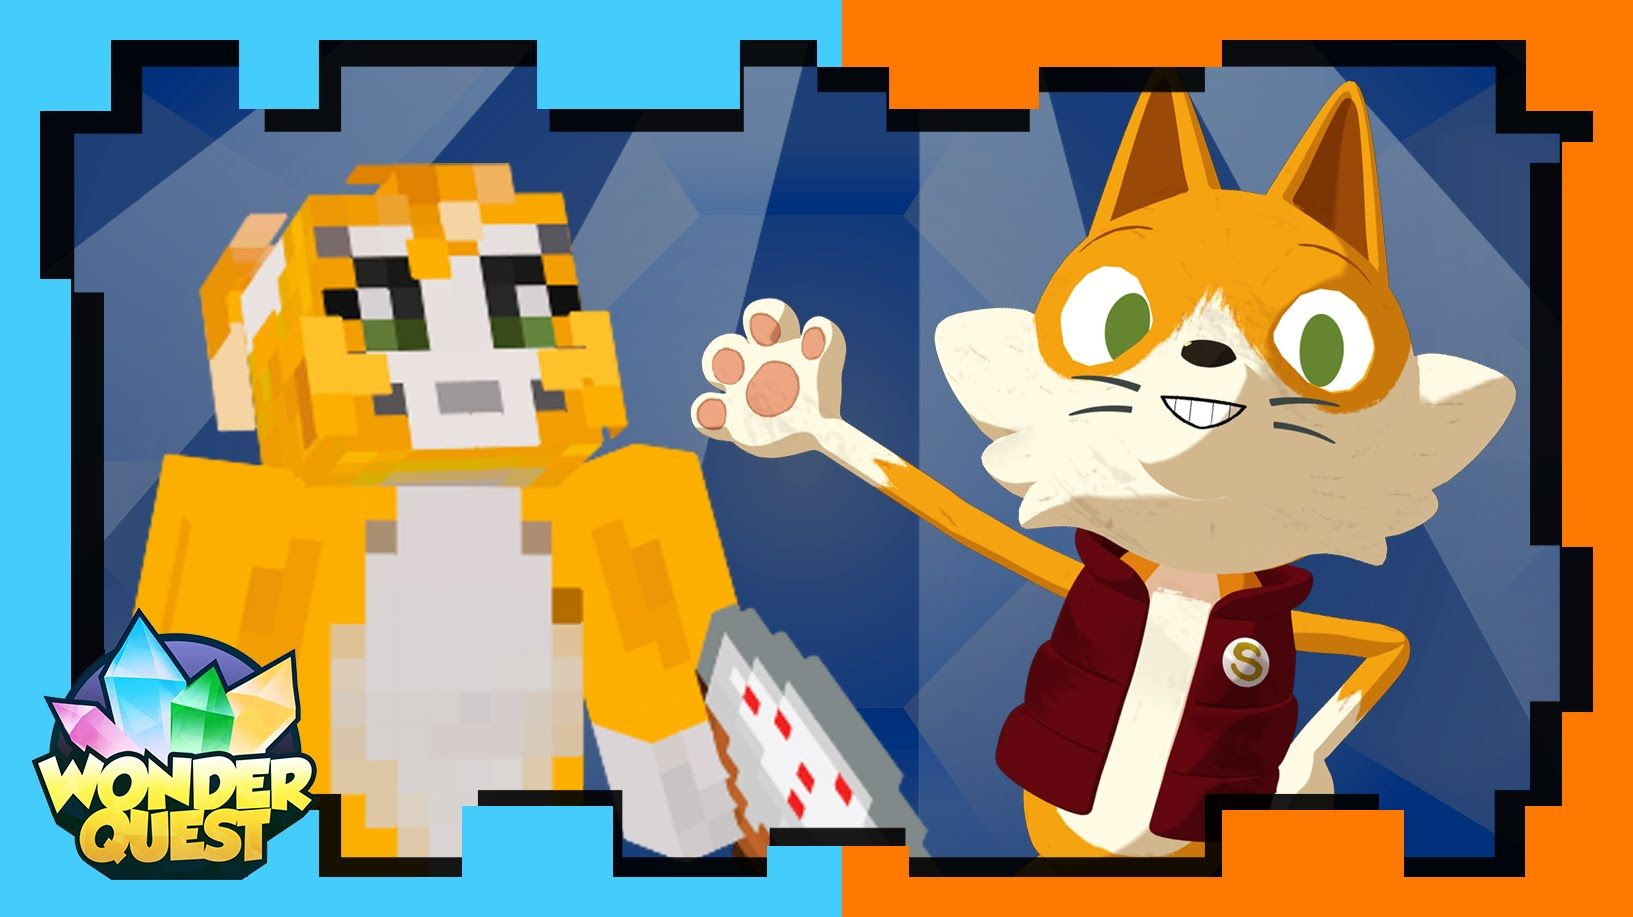 Trailer Stampy Has A New Minecraft Show Wonder Quest Stampy Stampy Cat Minecraft